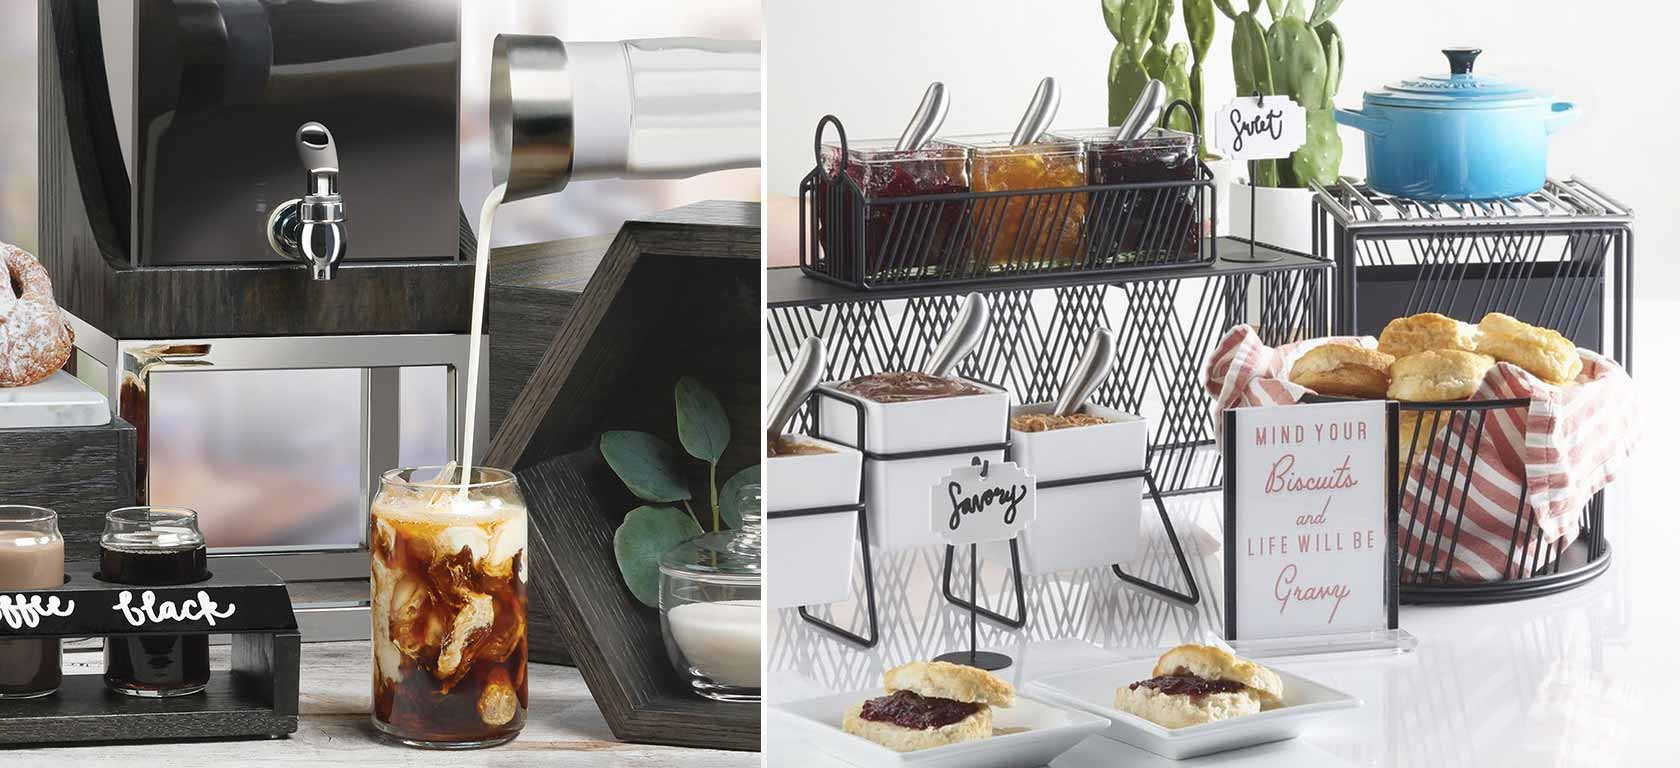 On the left, an upscale chrome-finish coffee bar display; on the right, breakfast pastry assortments on black metal risers.